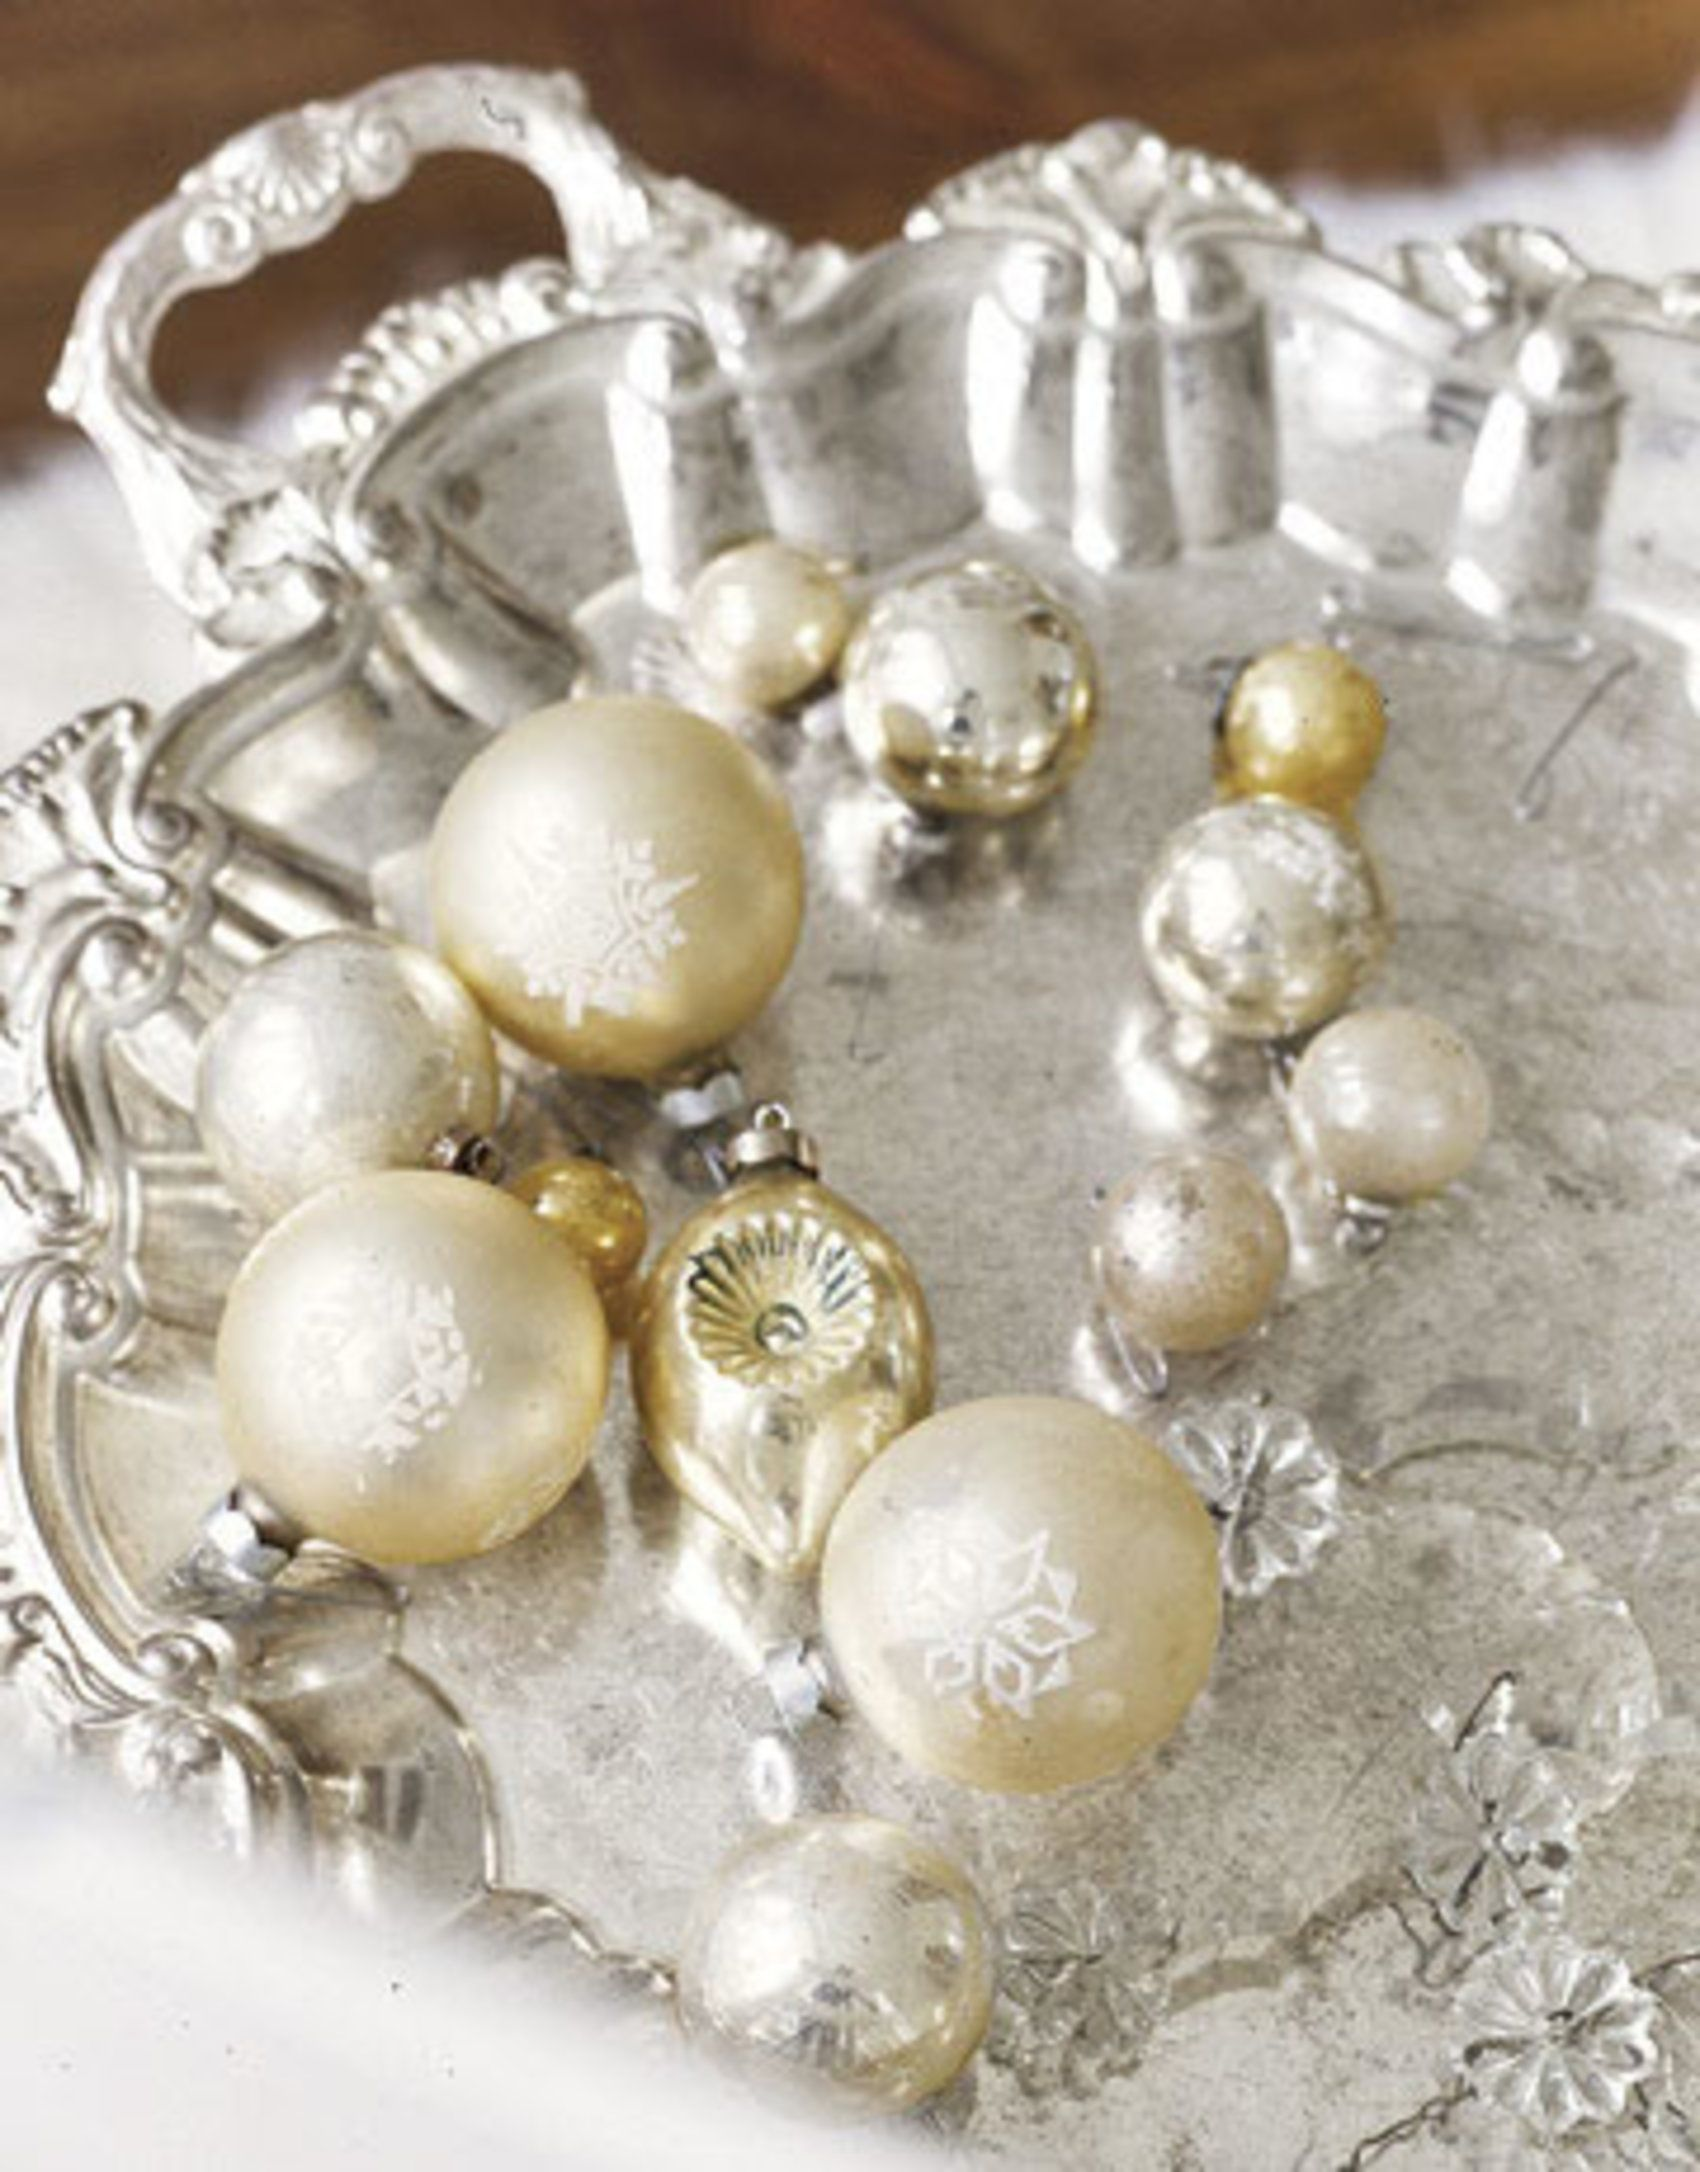 Platter with ornaments